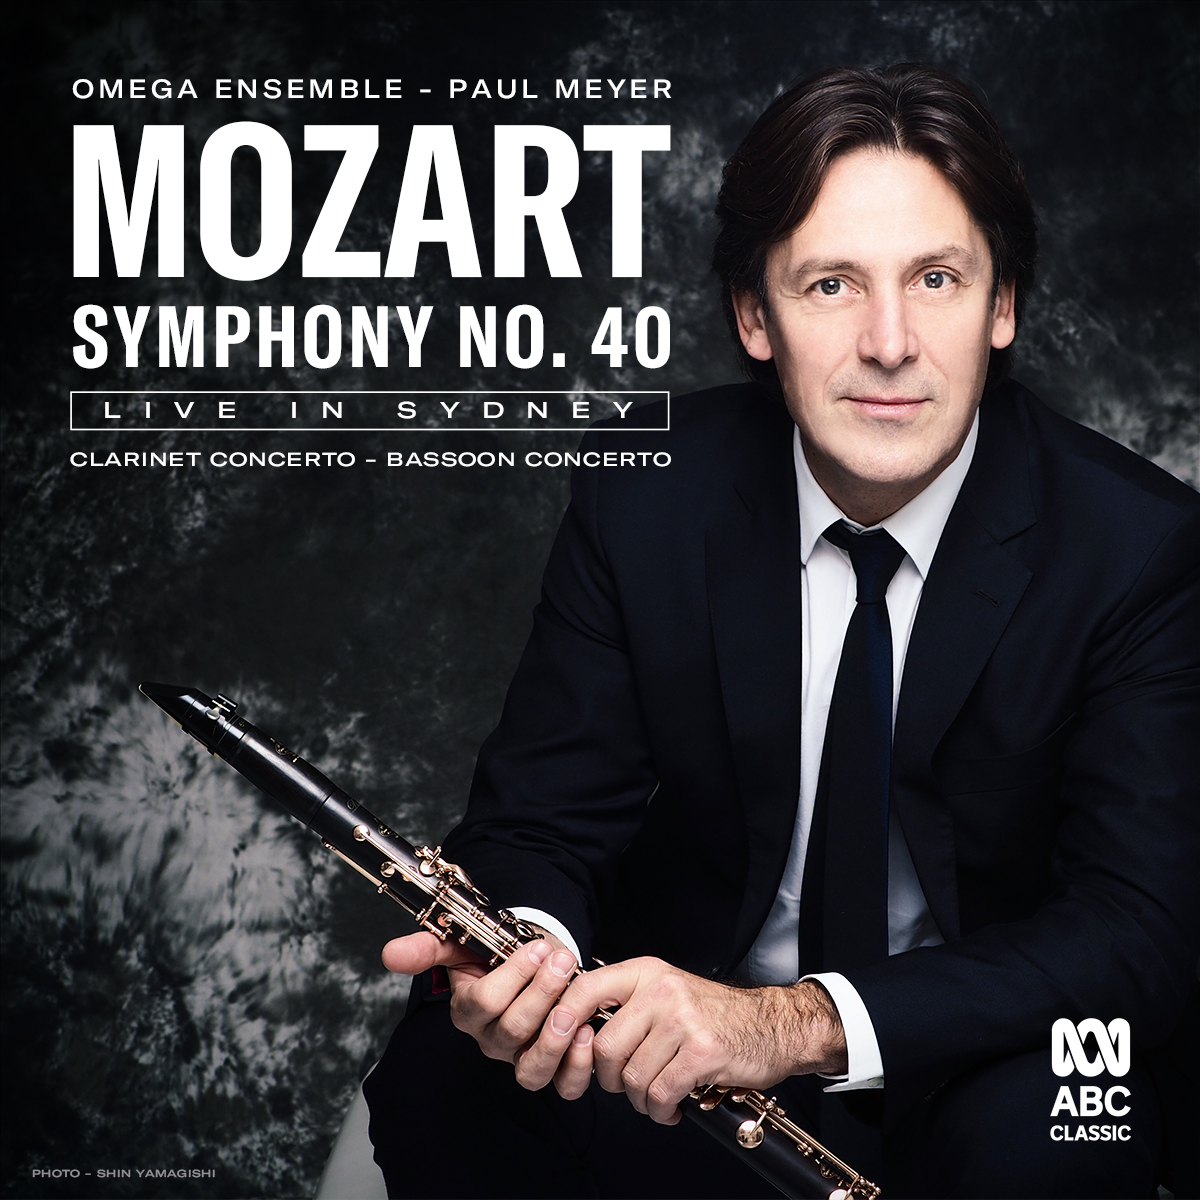 David Rowden appears as Principal Clarinet in Mozart Symphony 40.